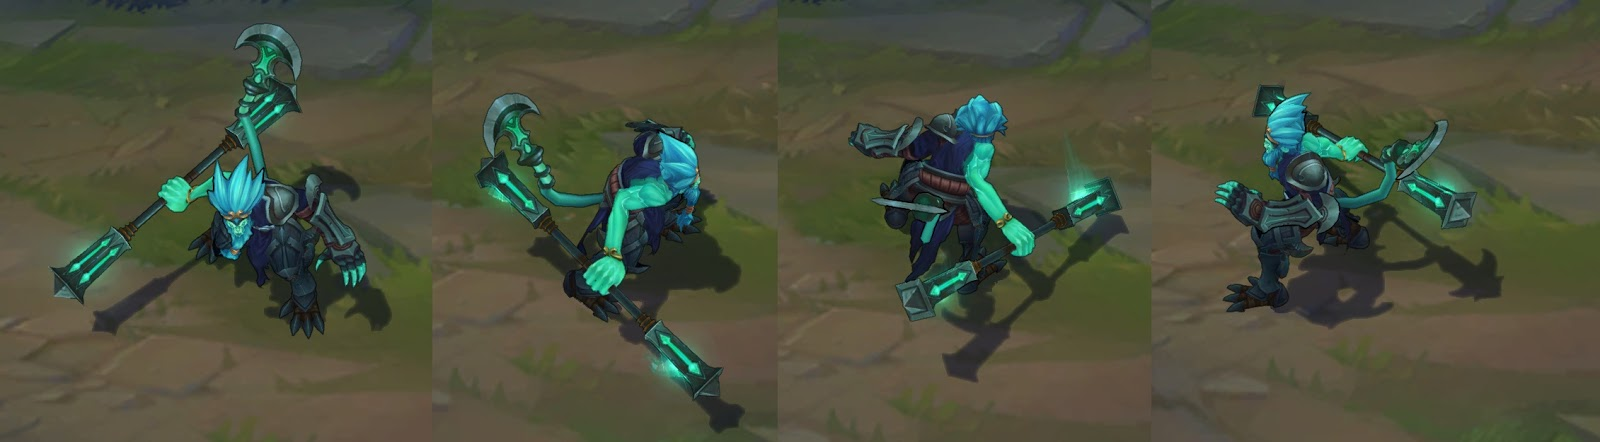 how to change ward emotes in lol